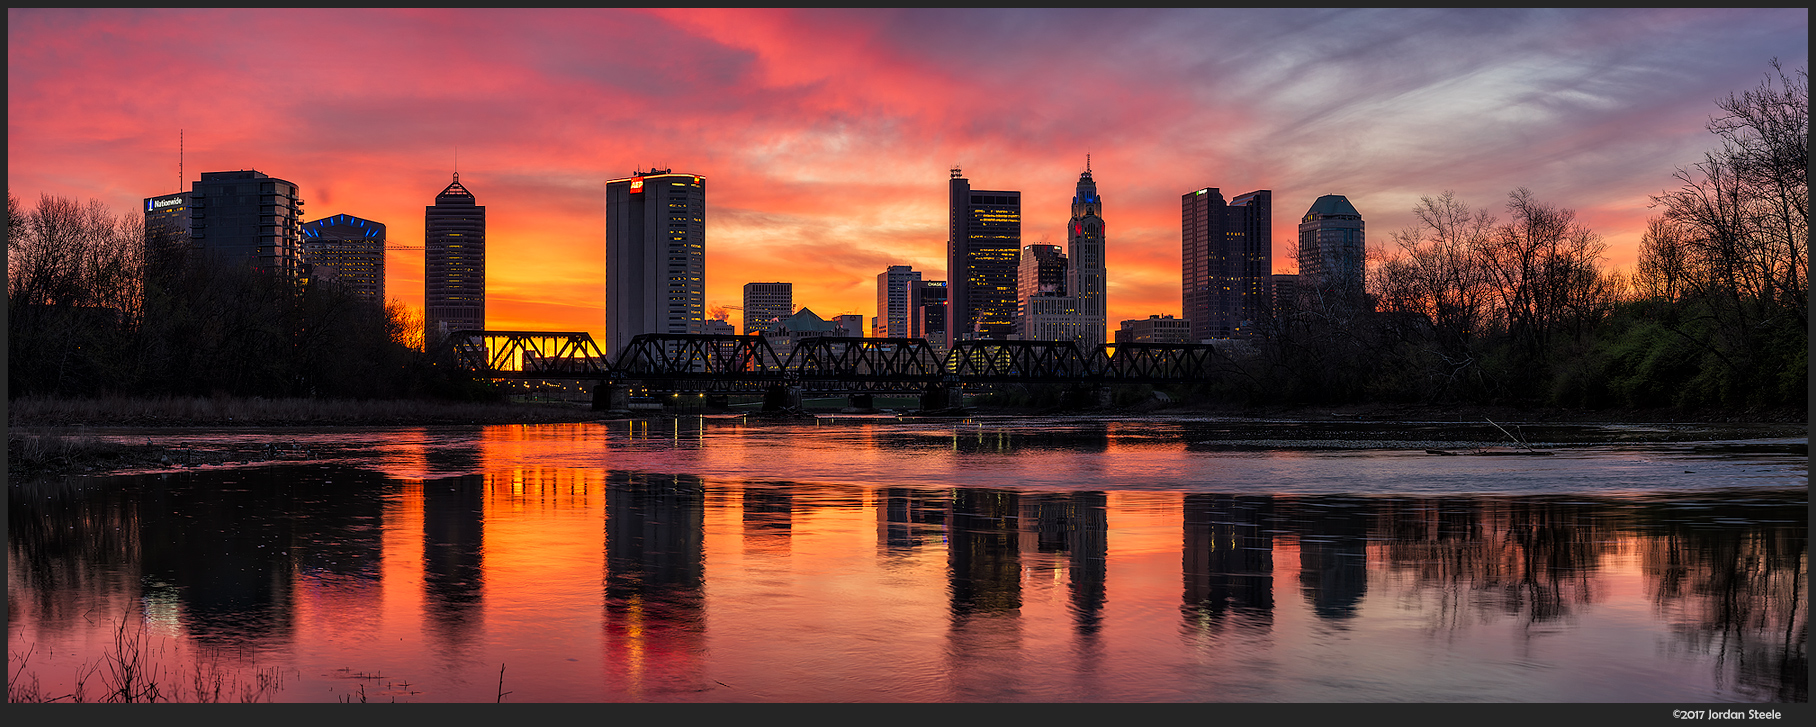 Columbus at Sunrise- 6 image stitch - Sony A7 II with Sony FE 85mm f/1.8 @ f/11